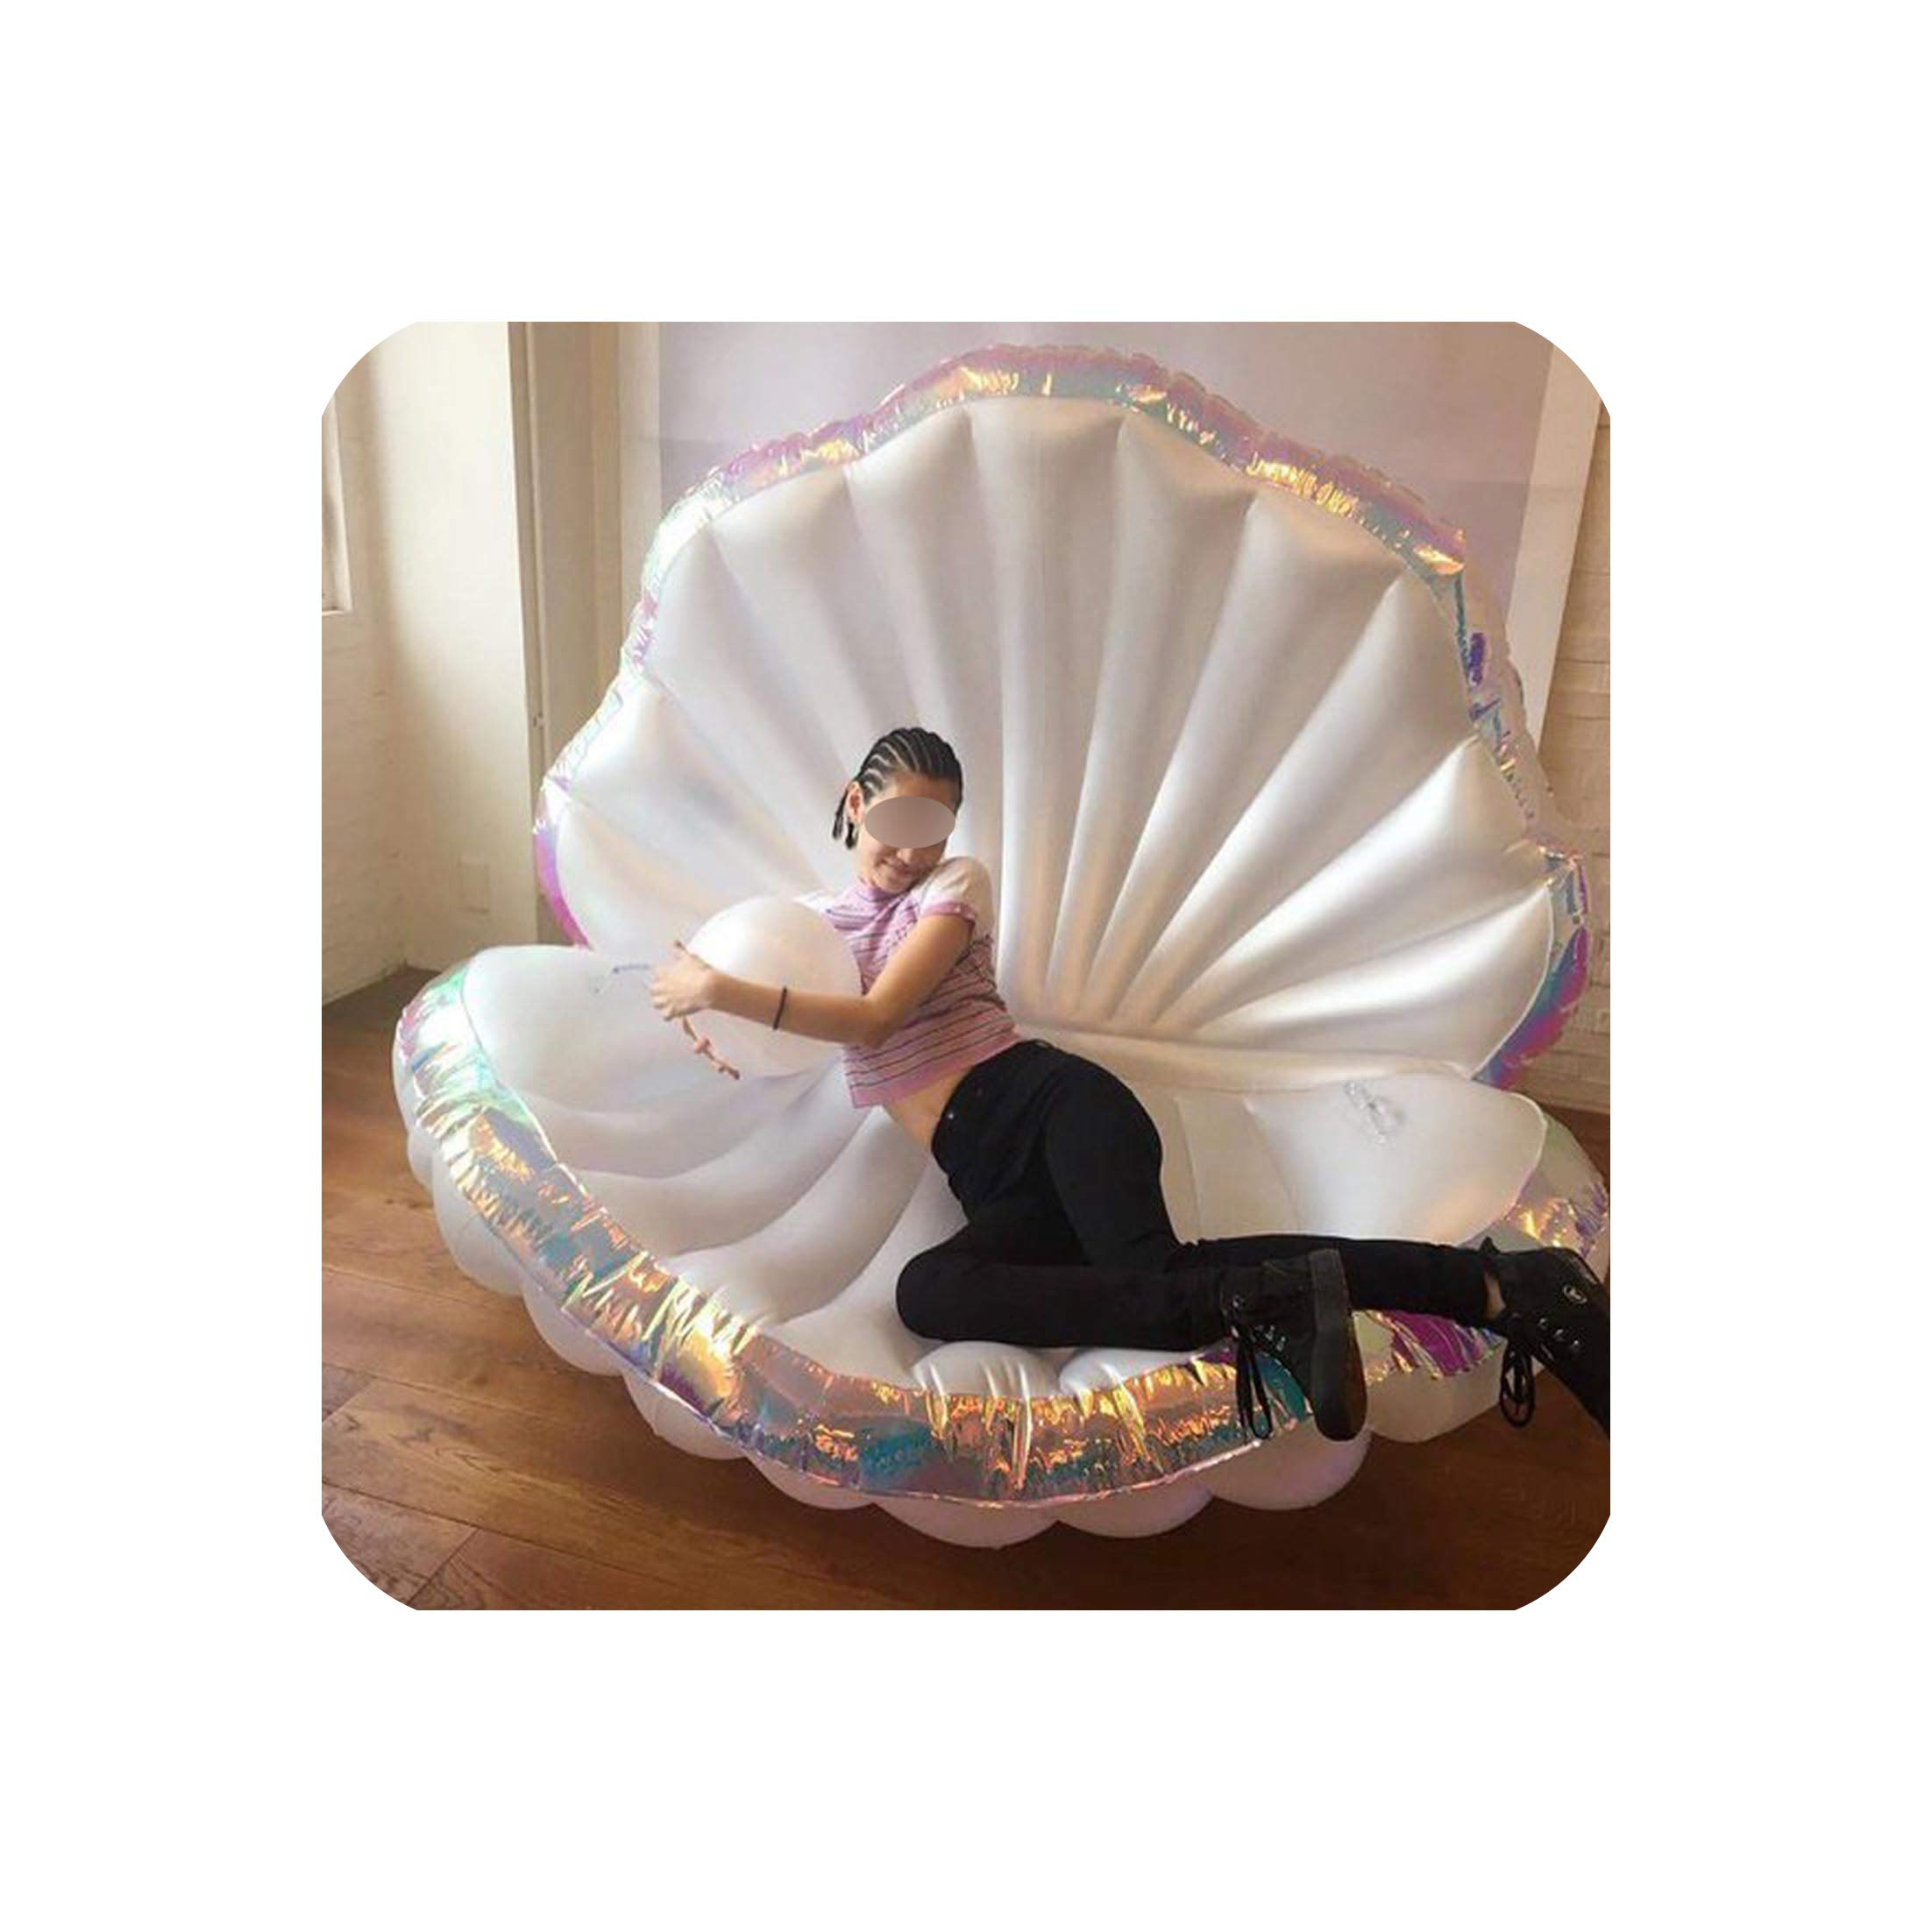 Giant Shell with Pearl Inflatable Pool Float Seashell Scallop Air Mattress Swimming Ring for Adult Women Beach Lounger Water Toy,Red by Sweet But Psycho Pool Infloats